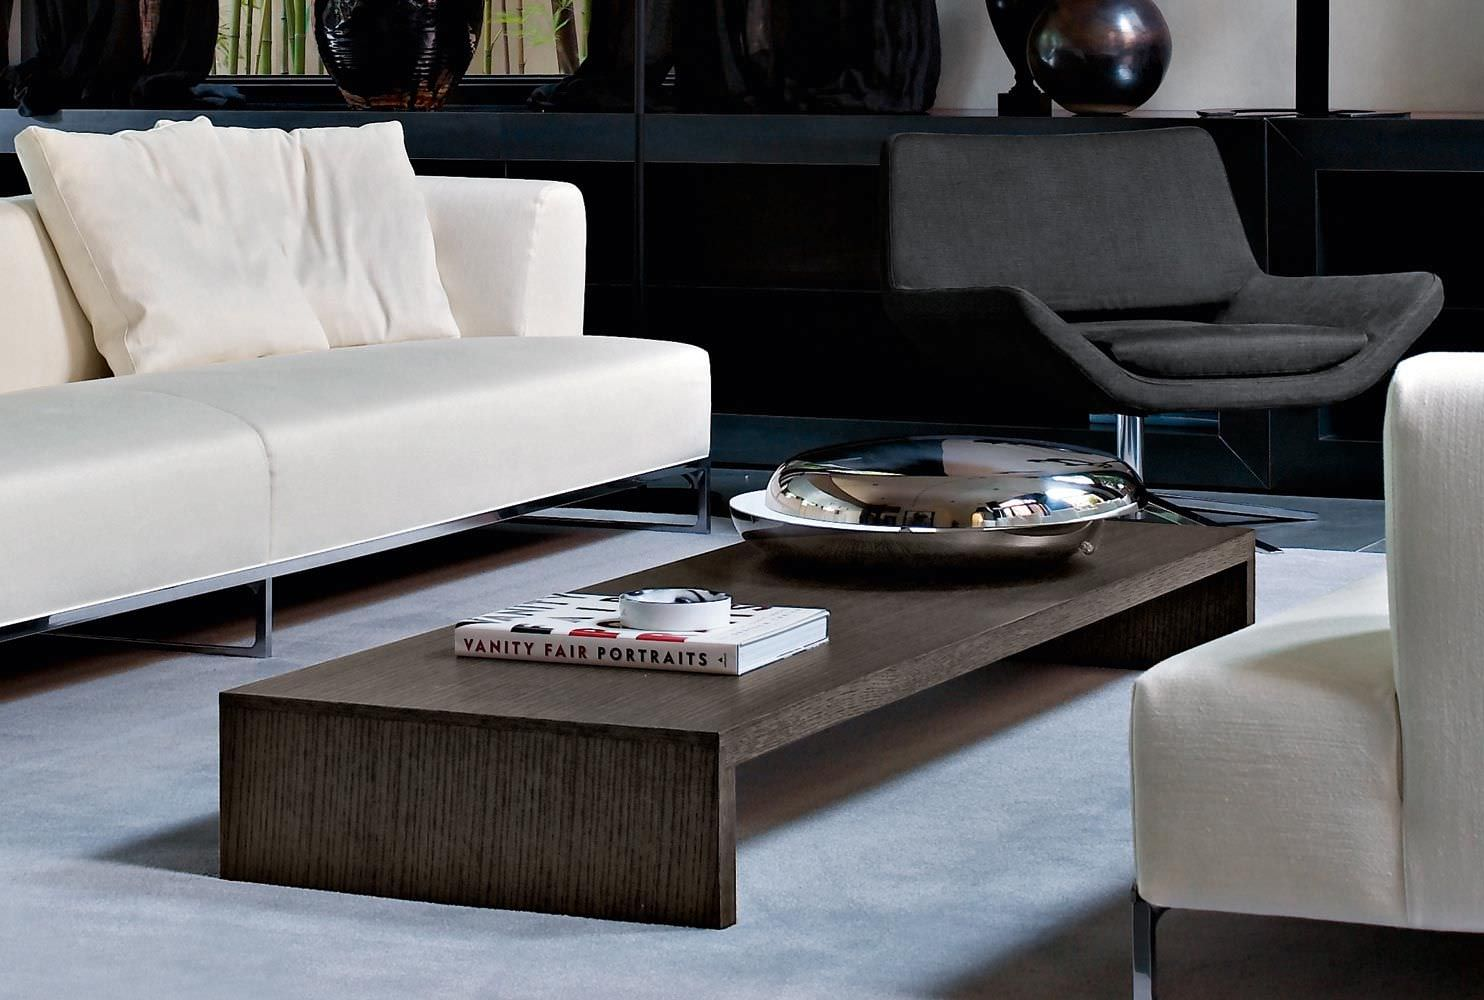 Super simple wooden walmart coffee table idea on white area rug with white sofa design and